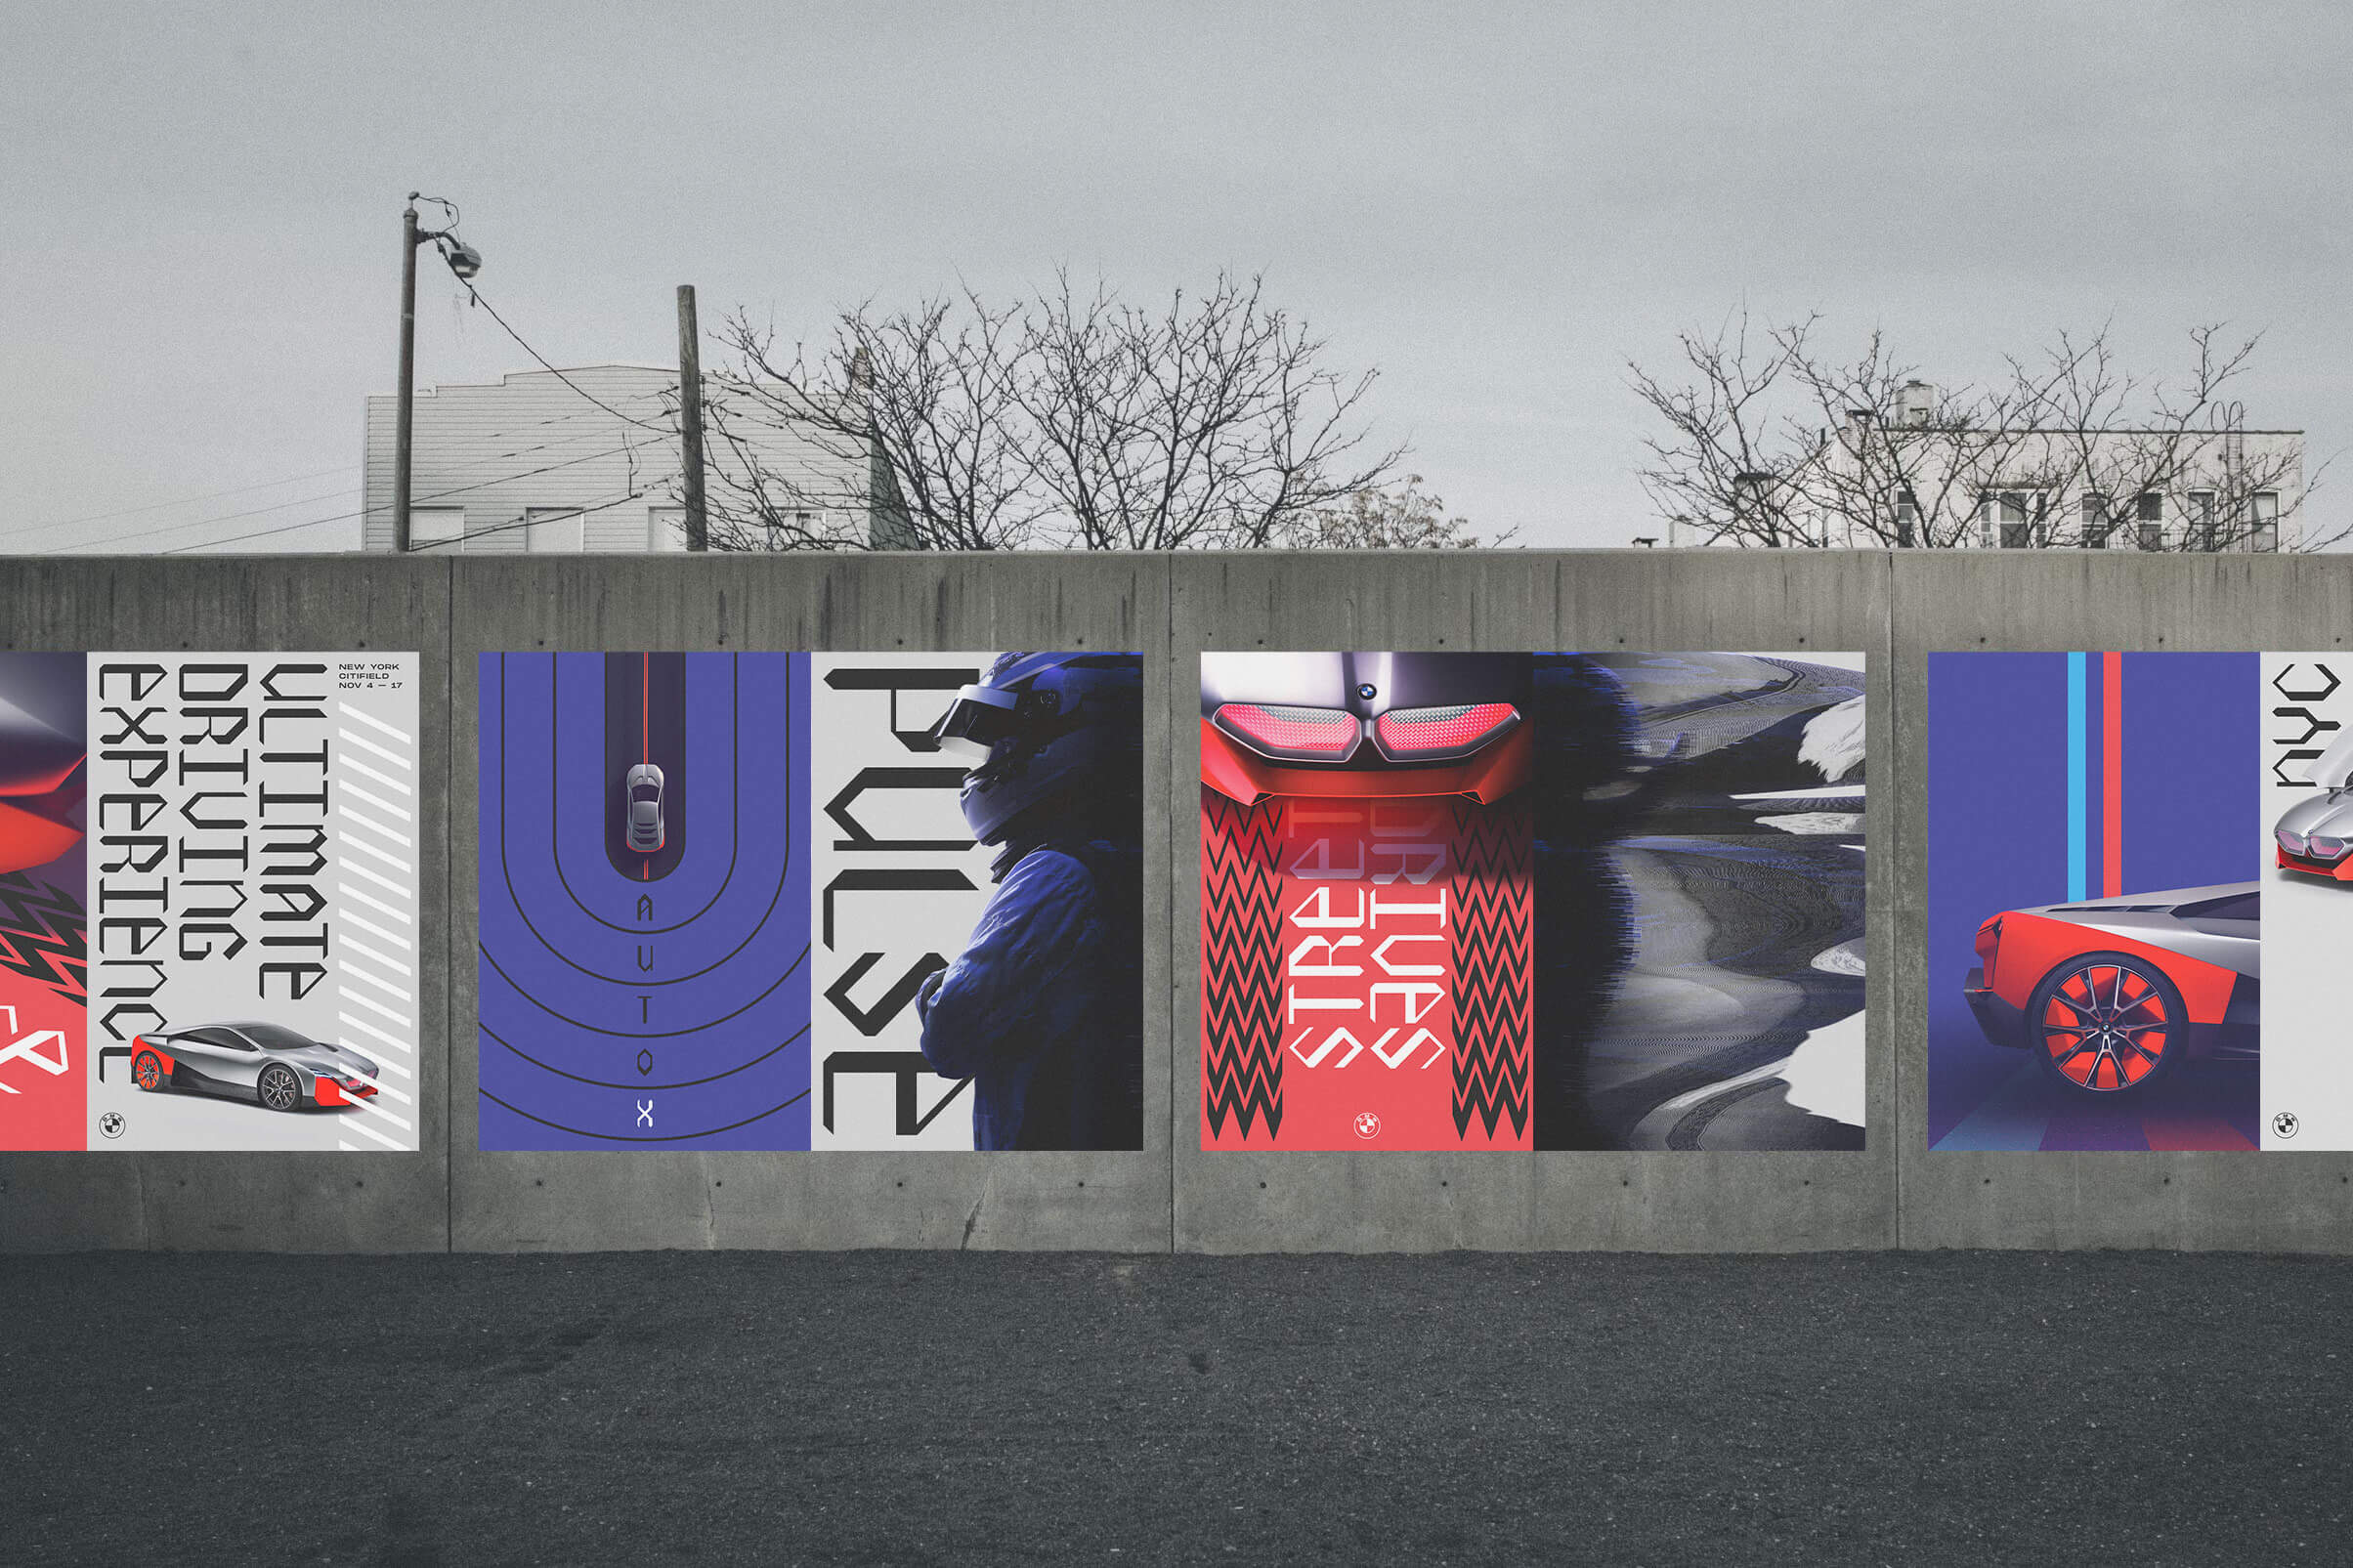 UDE_Posters_Wall2